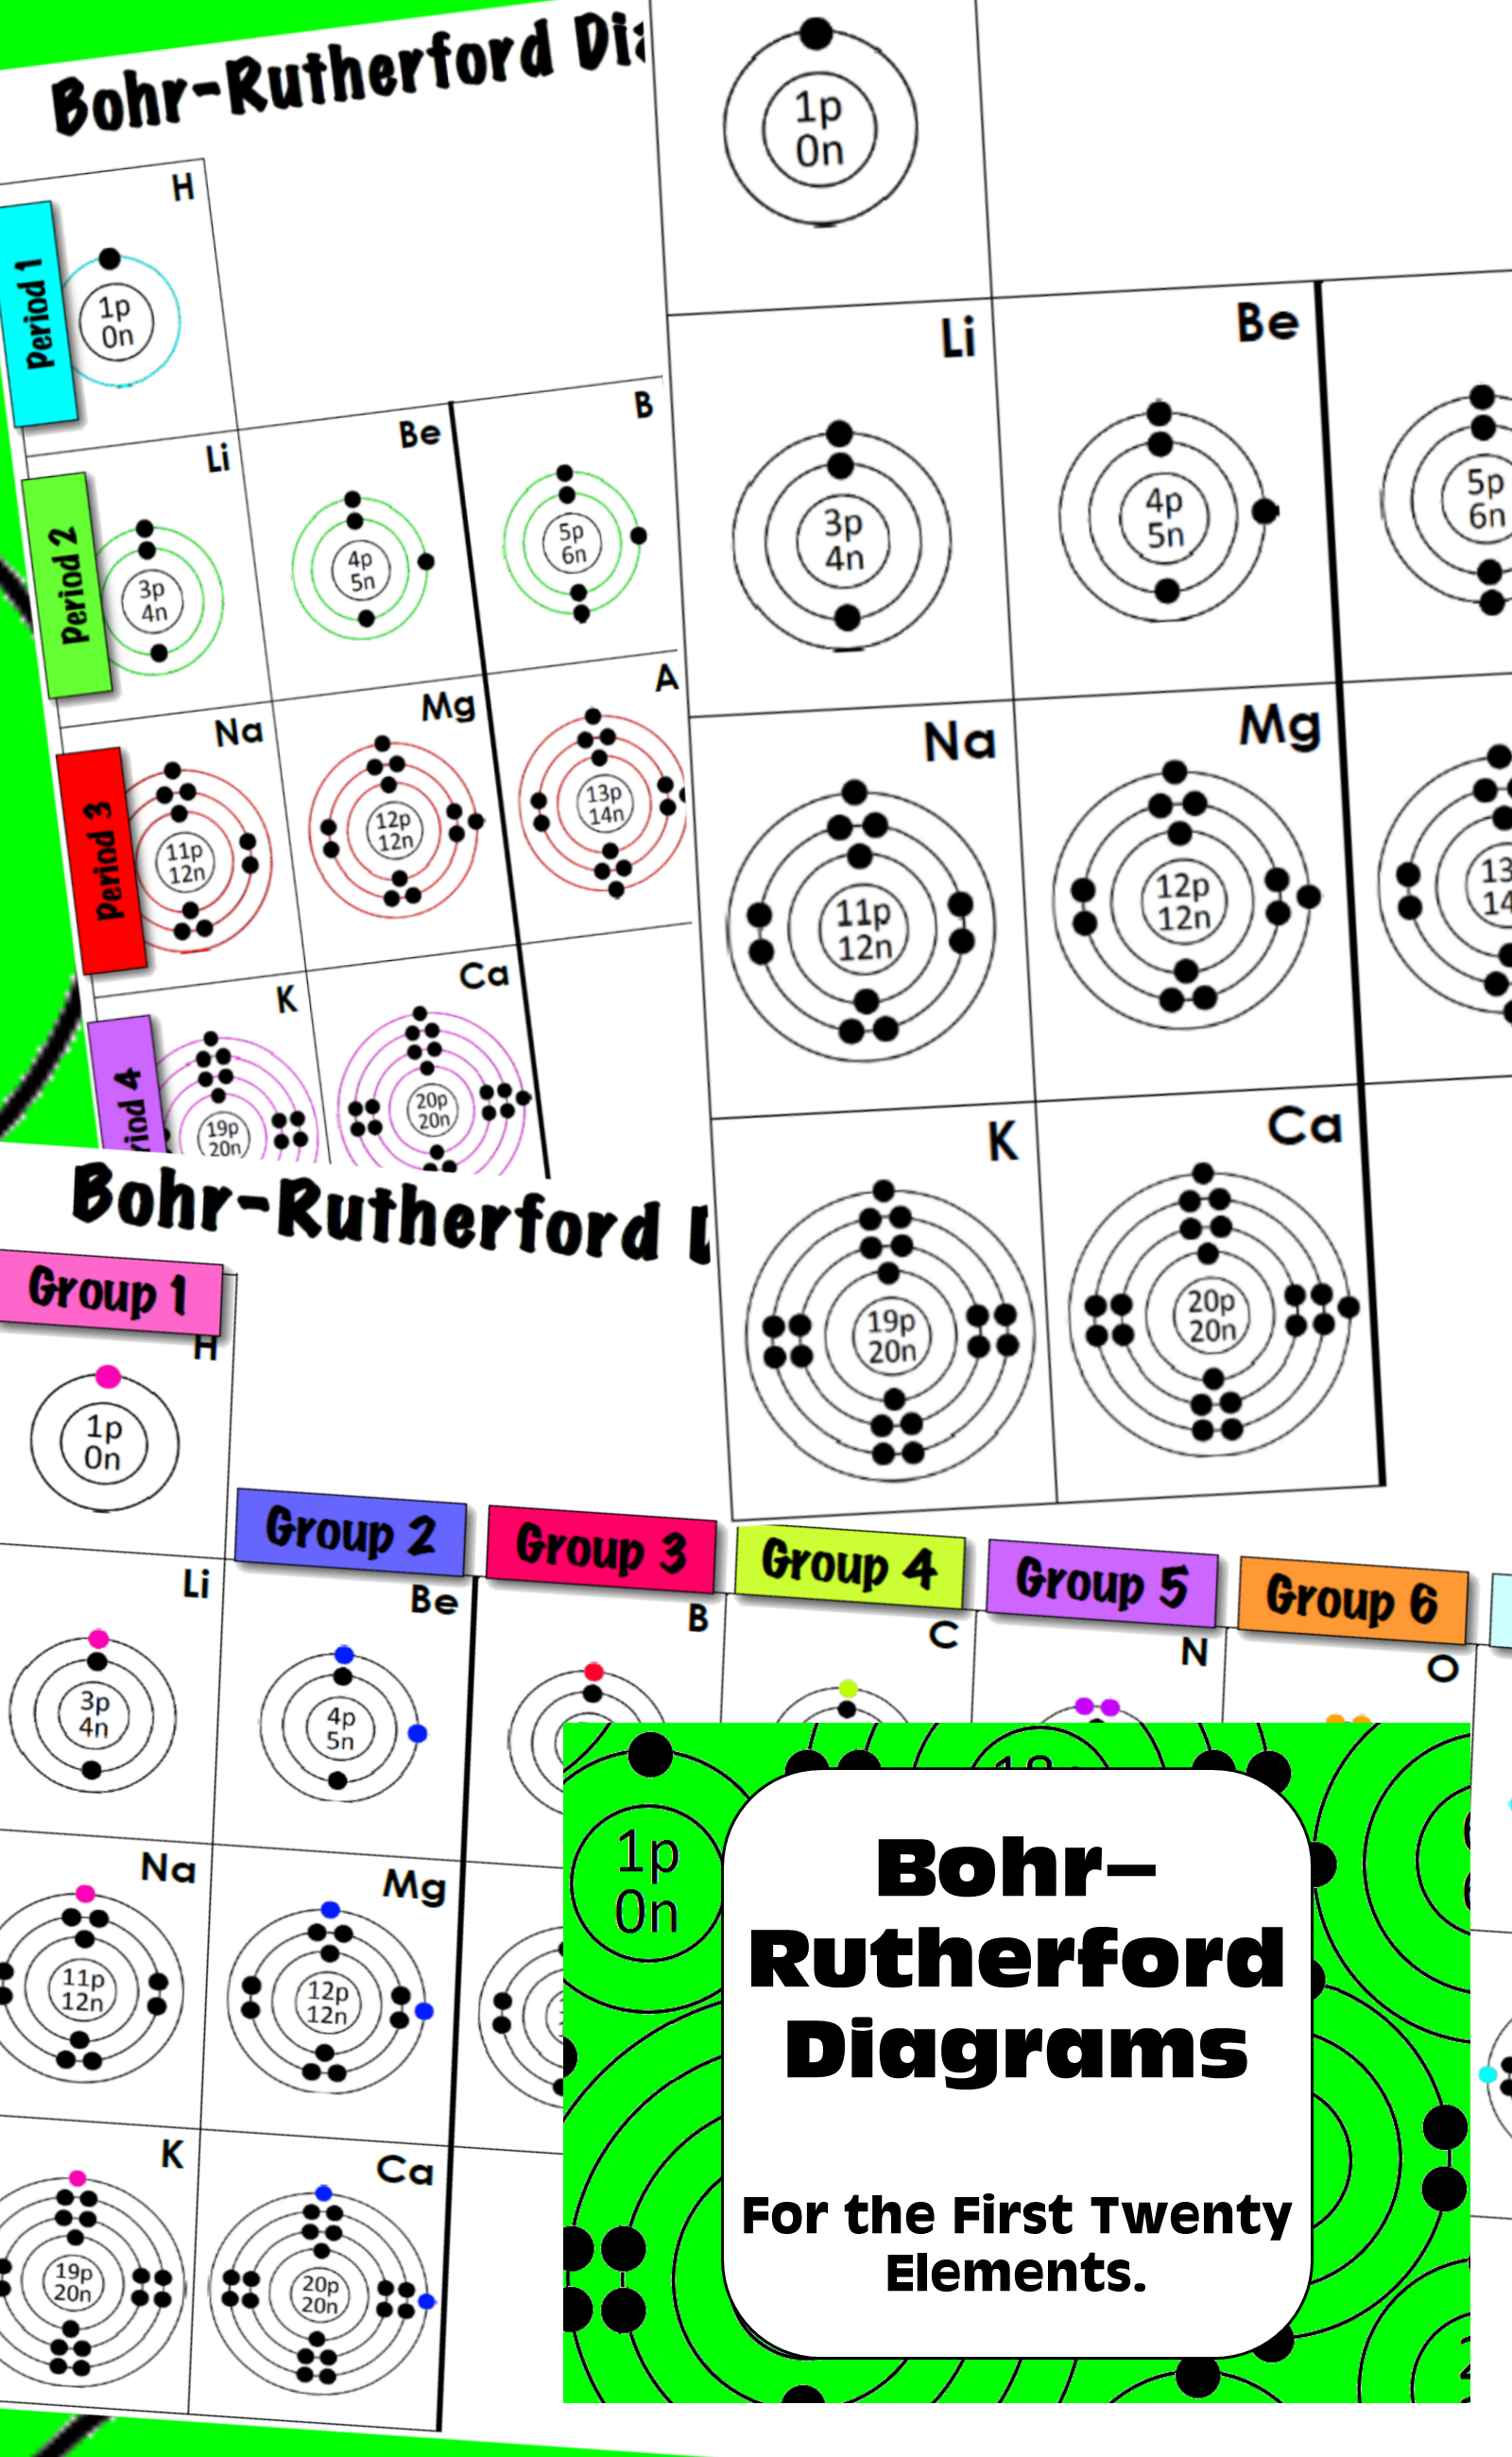 Bohr Models BohrRutherford Diagrams for the First Twenty